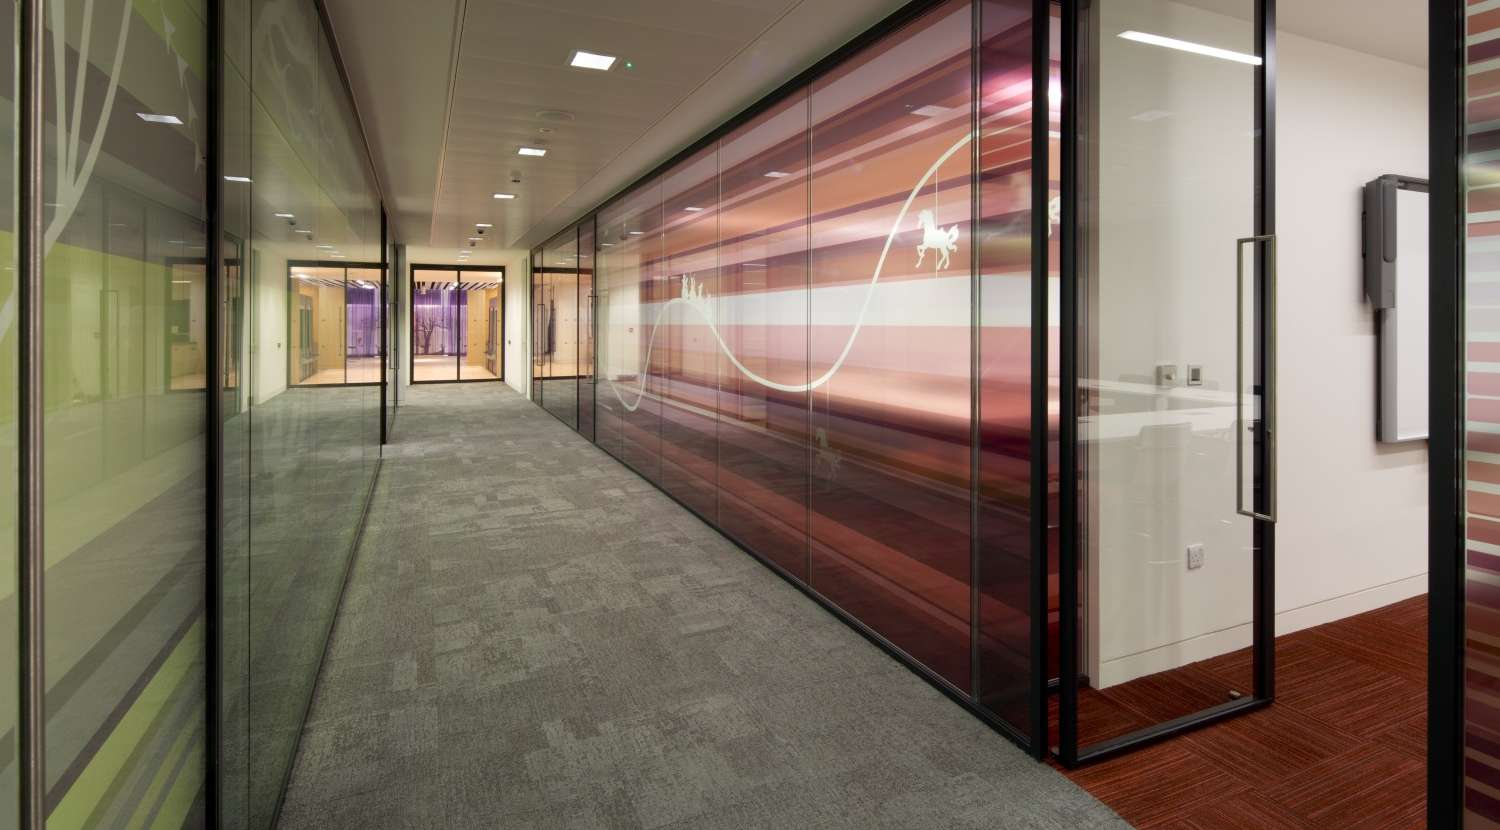 Meeting rooms with colourful wall detailing in London office fit out